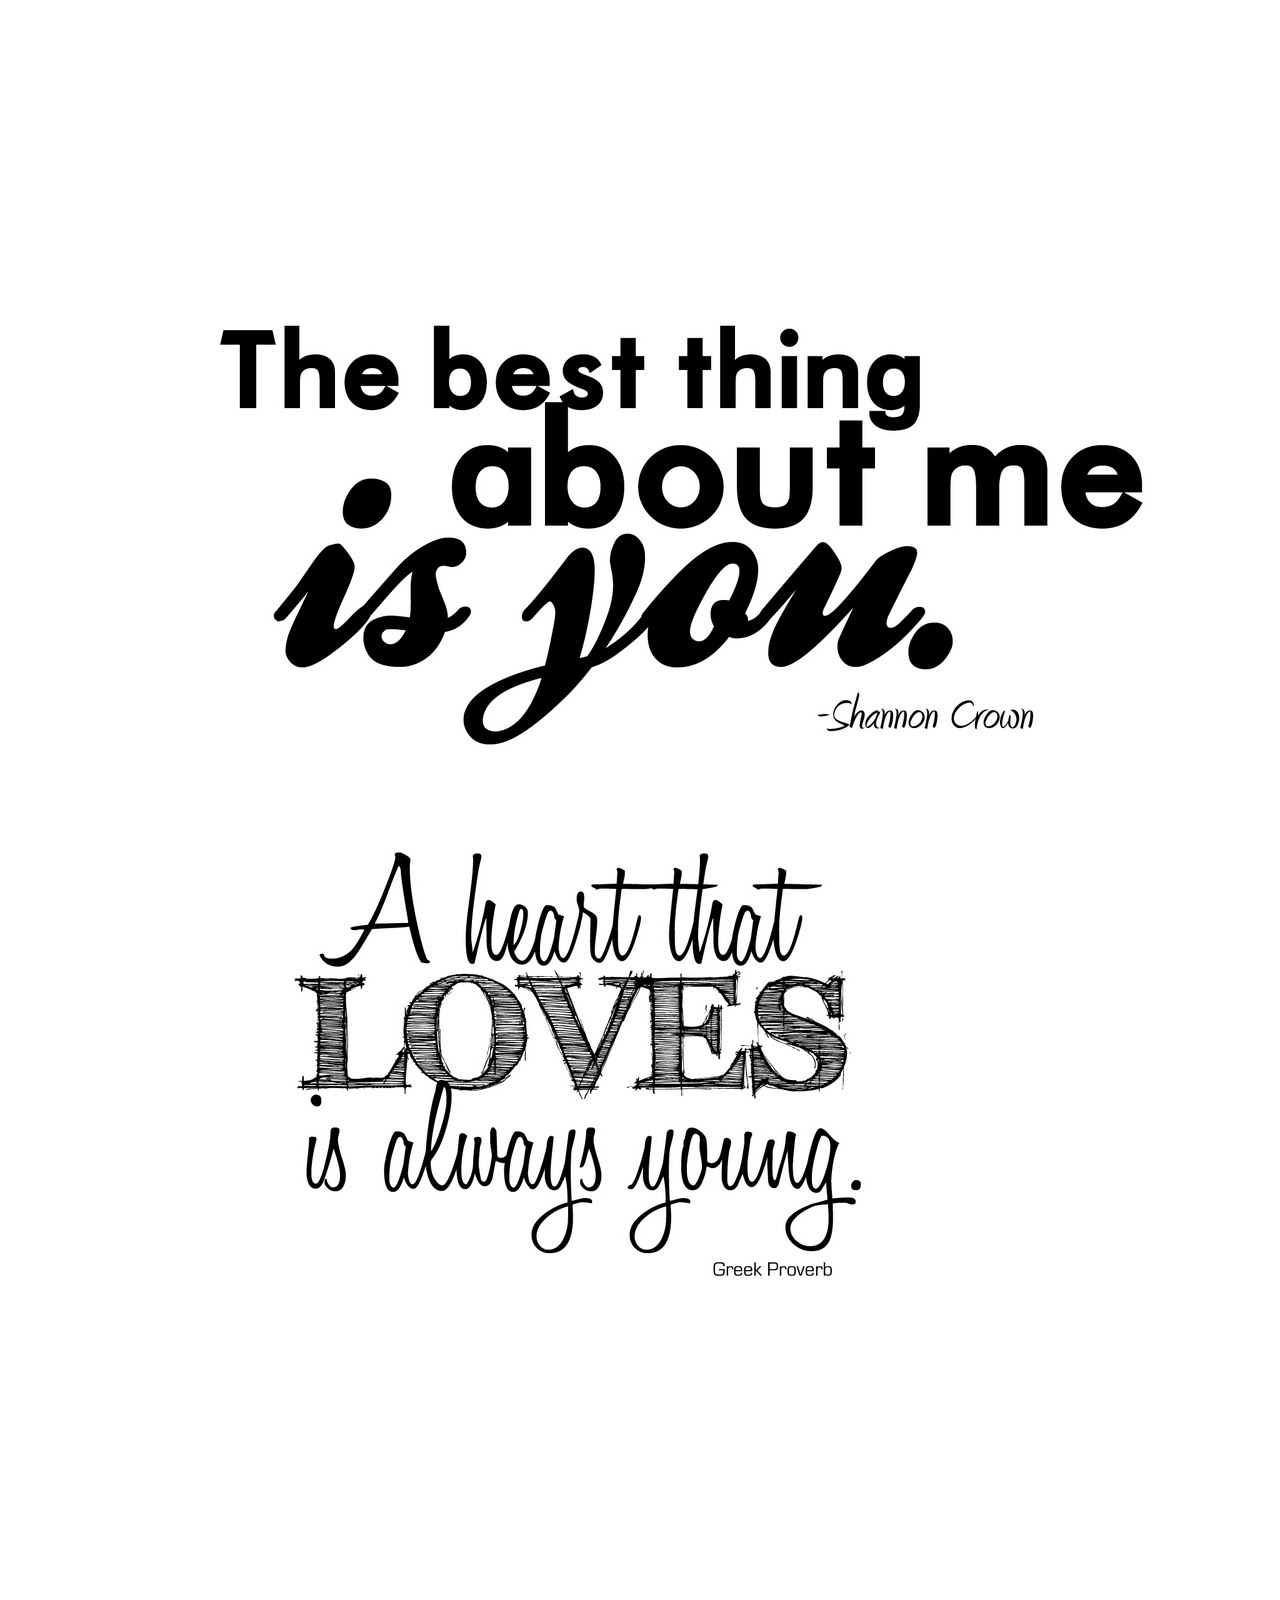 Love Lyrics Quotes Awesome Cute Love Quotes Song Lyrics  Love This Song